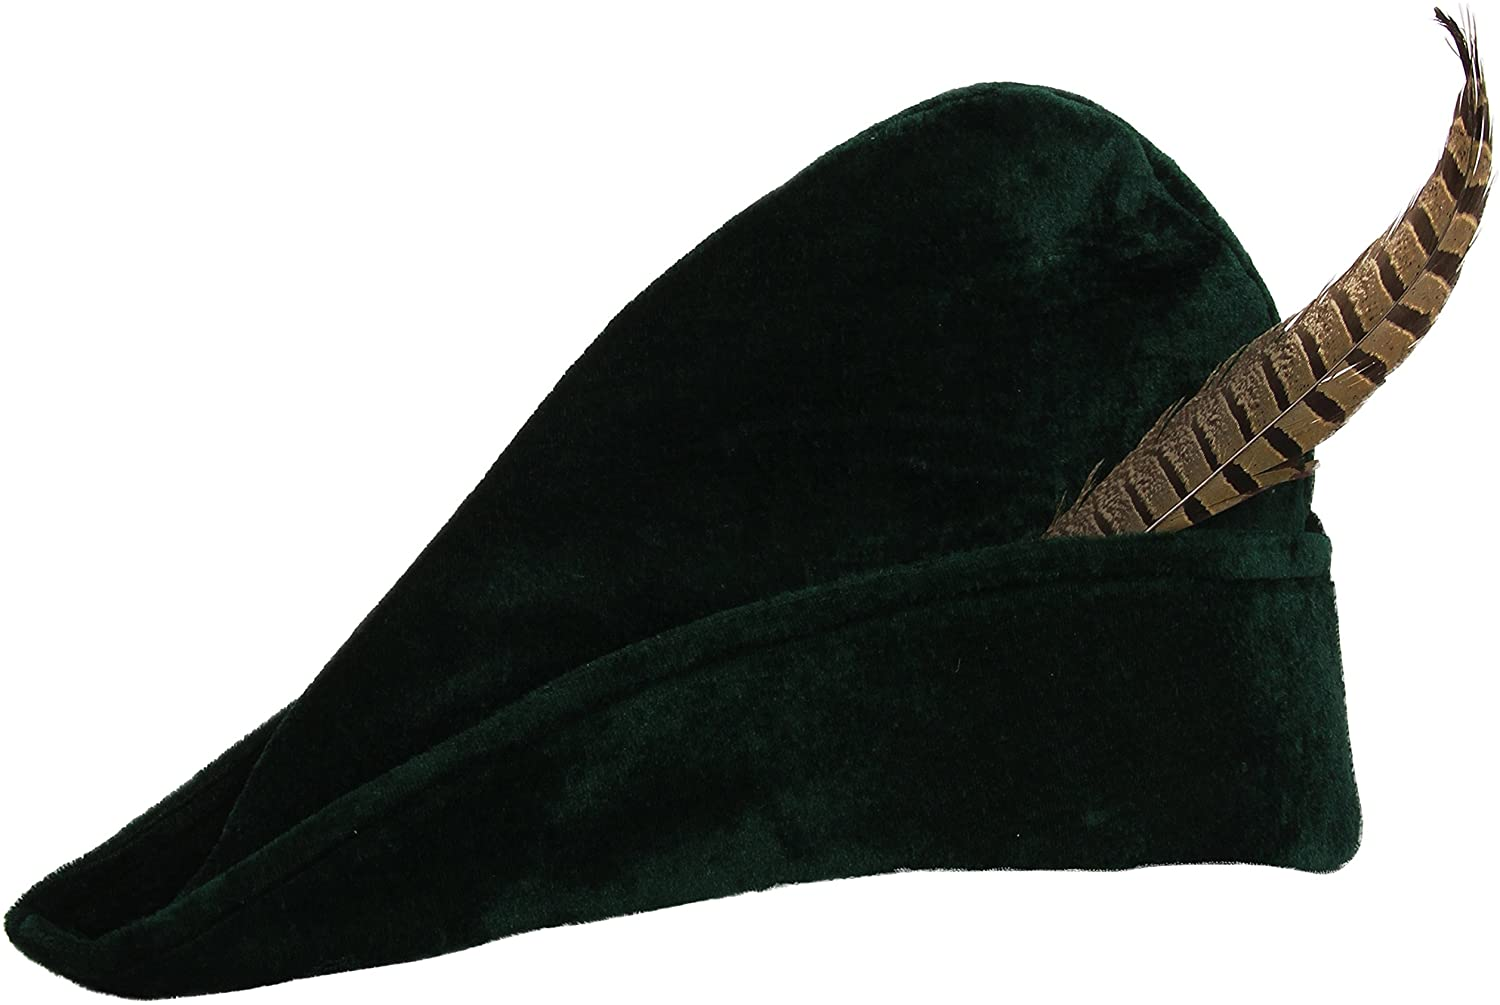 widmann Prince of Thieves with Feather Party Theme Hats Caps & Headwear for Fancy Dress Costumes Accessory